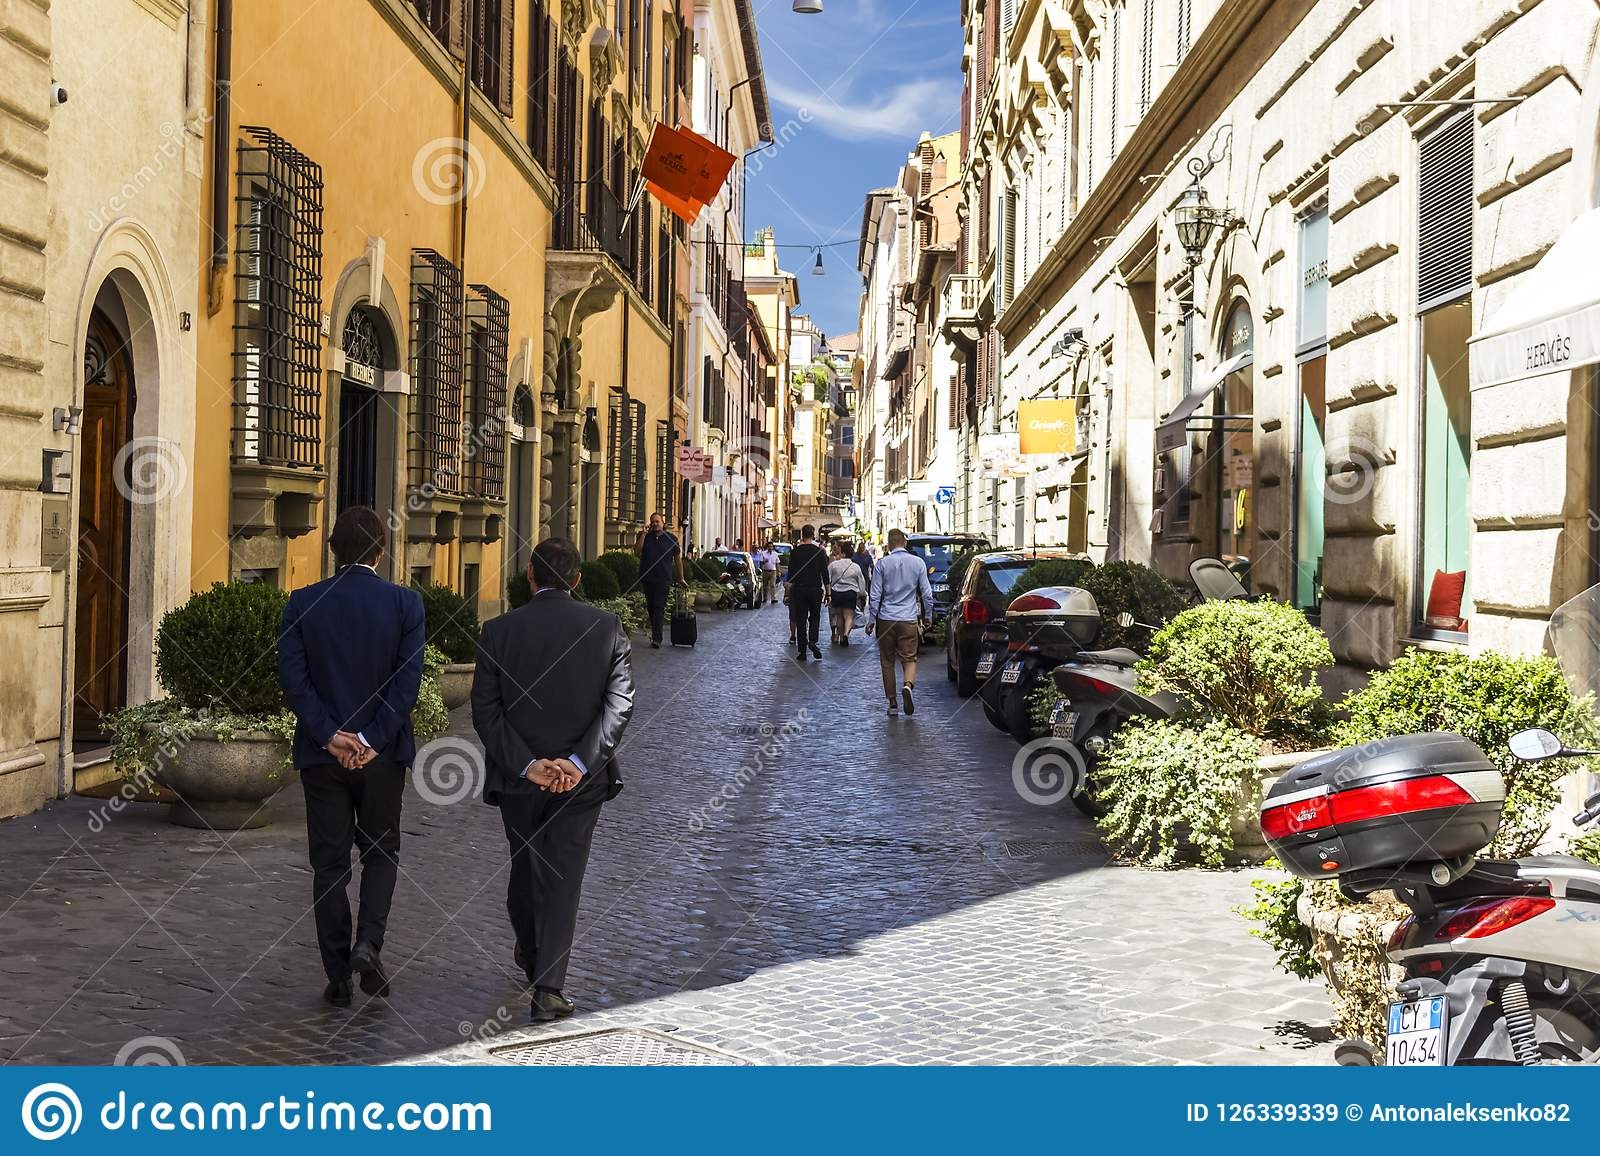 Rome/Italy - August 27, 2018: Busy Roman Street with Fashionable City People, Boutiques and Motor Scooters parking